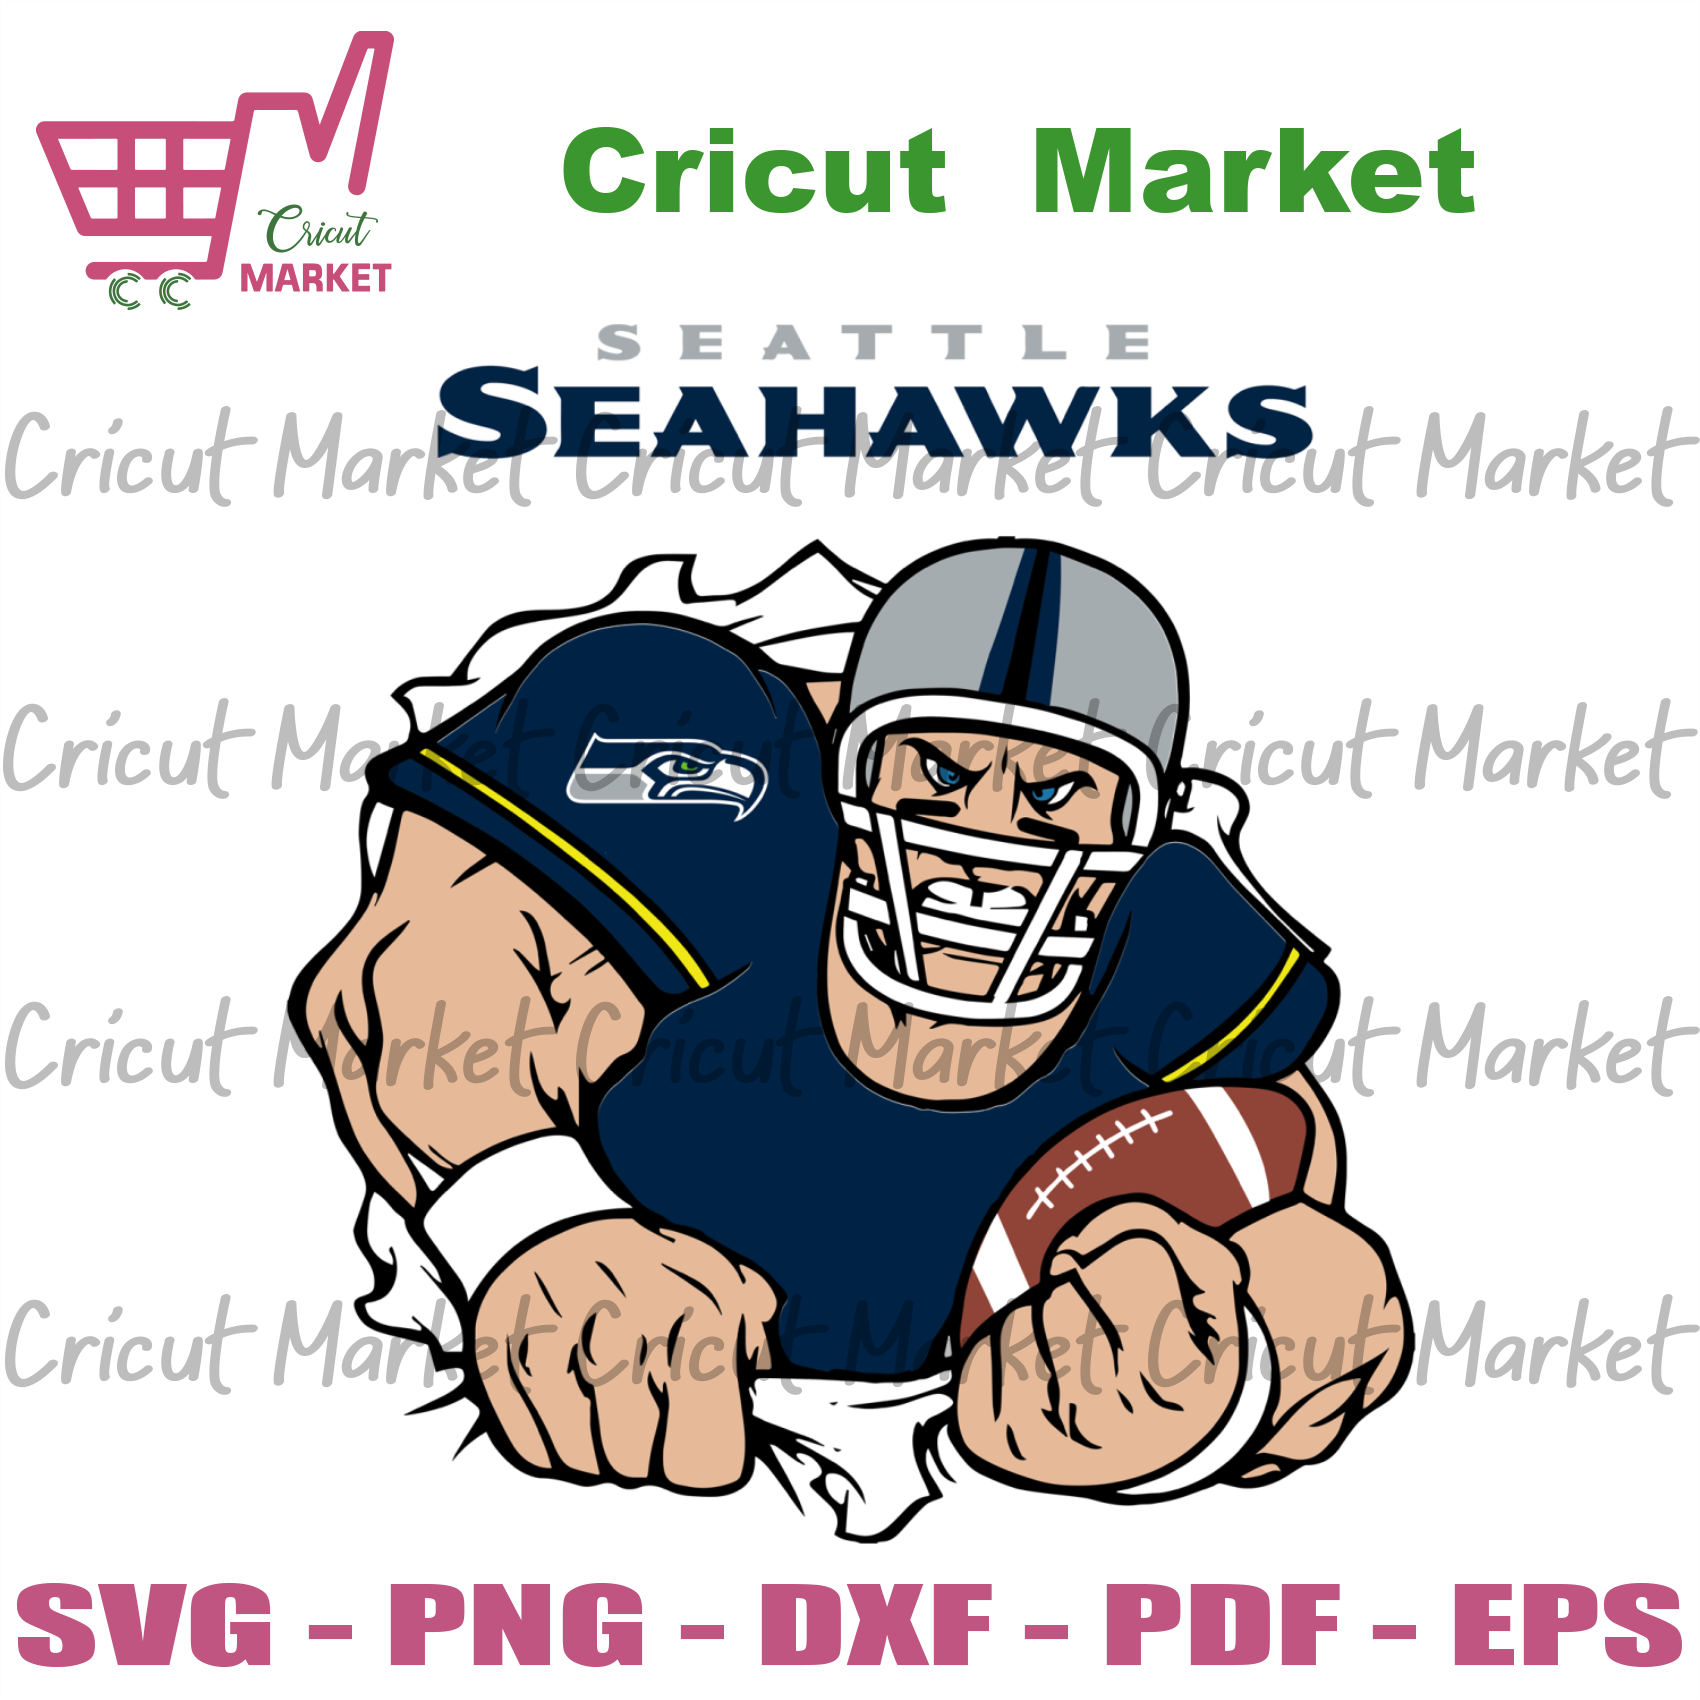 Seattle Seahawks Player, Nfl Svg, Seattle Seahawks Svg, Seattle Seahawks Football, Seahawks Shirt, Sport Svg, Nfl Fabric, Nfl Football, Football Mom Gift, Nfl Championship, Football Team, Nfl